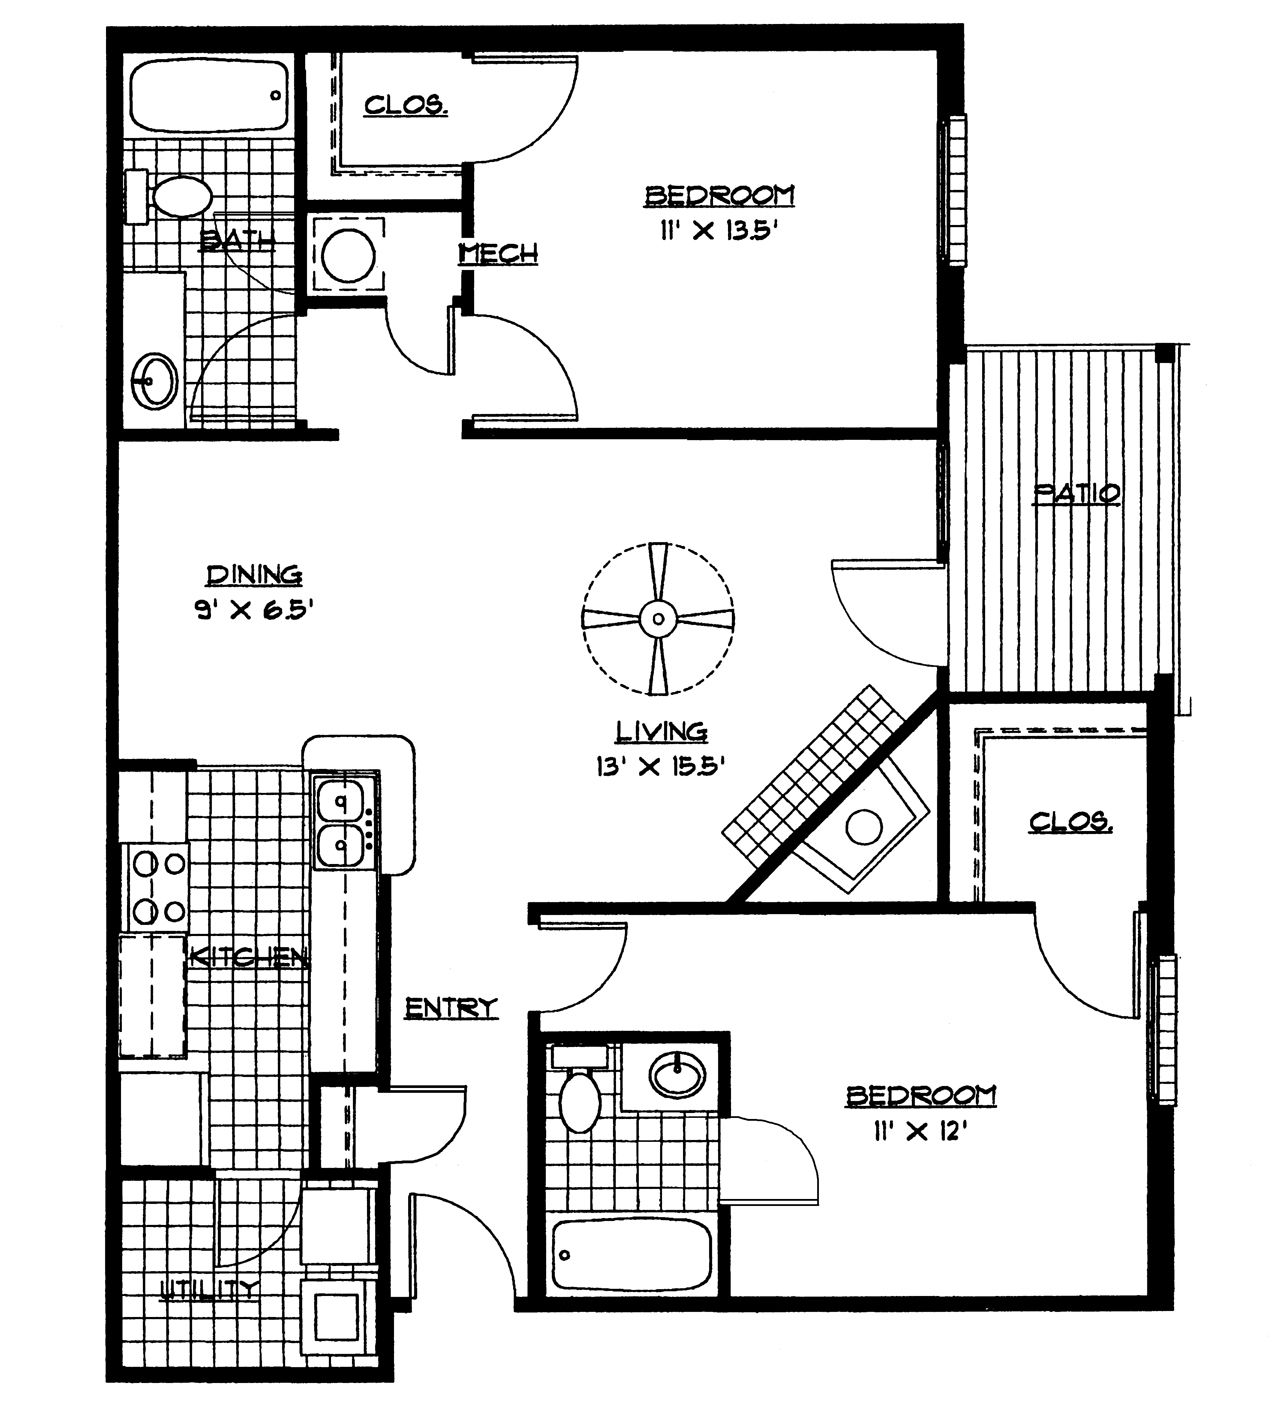 Small house floor plans 2 bedrooms bedroom floor plan House floor plan design software free download